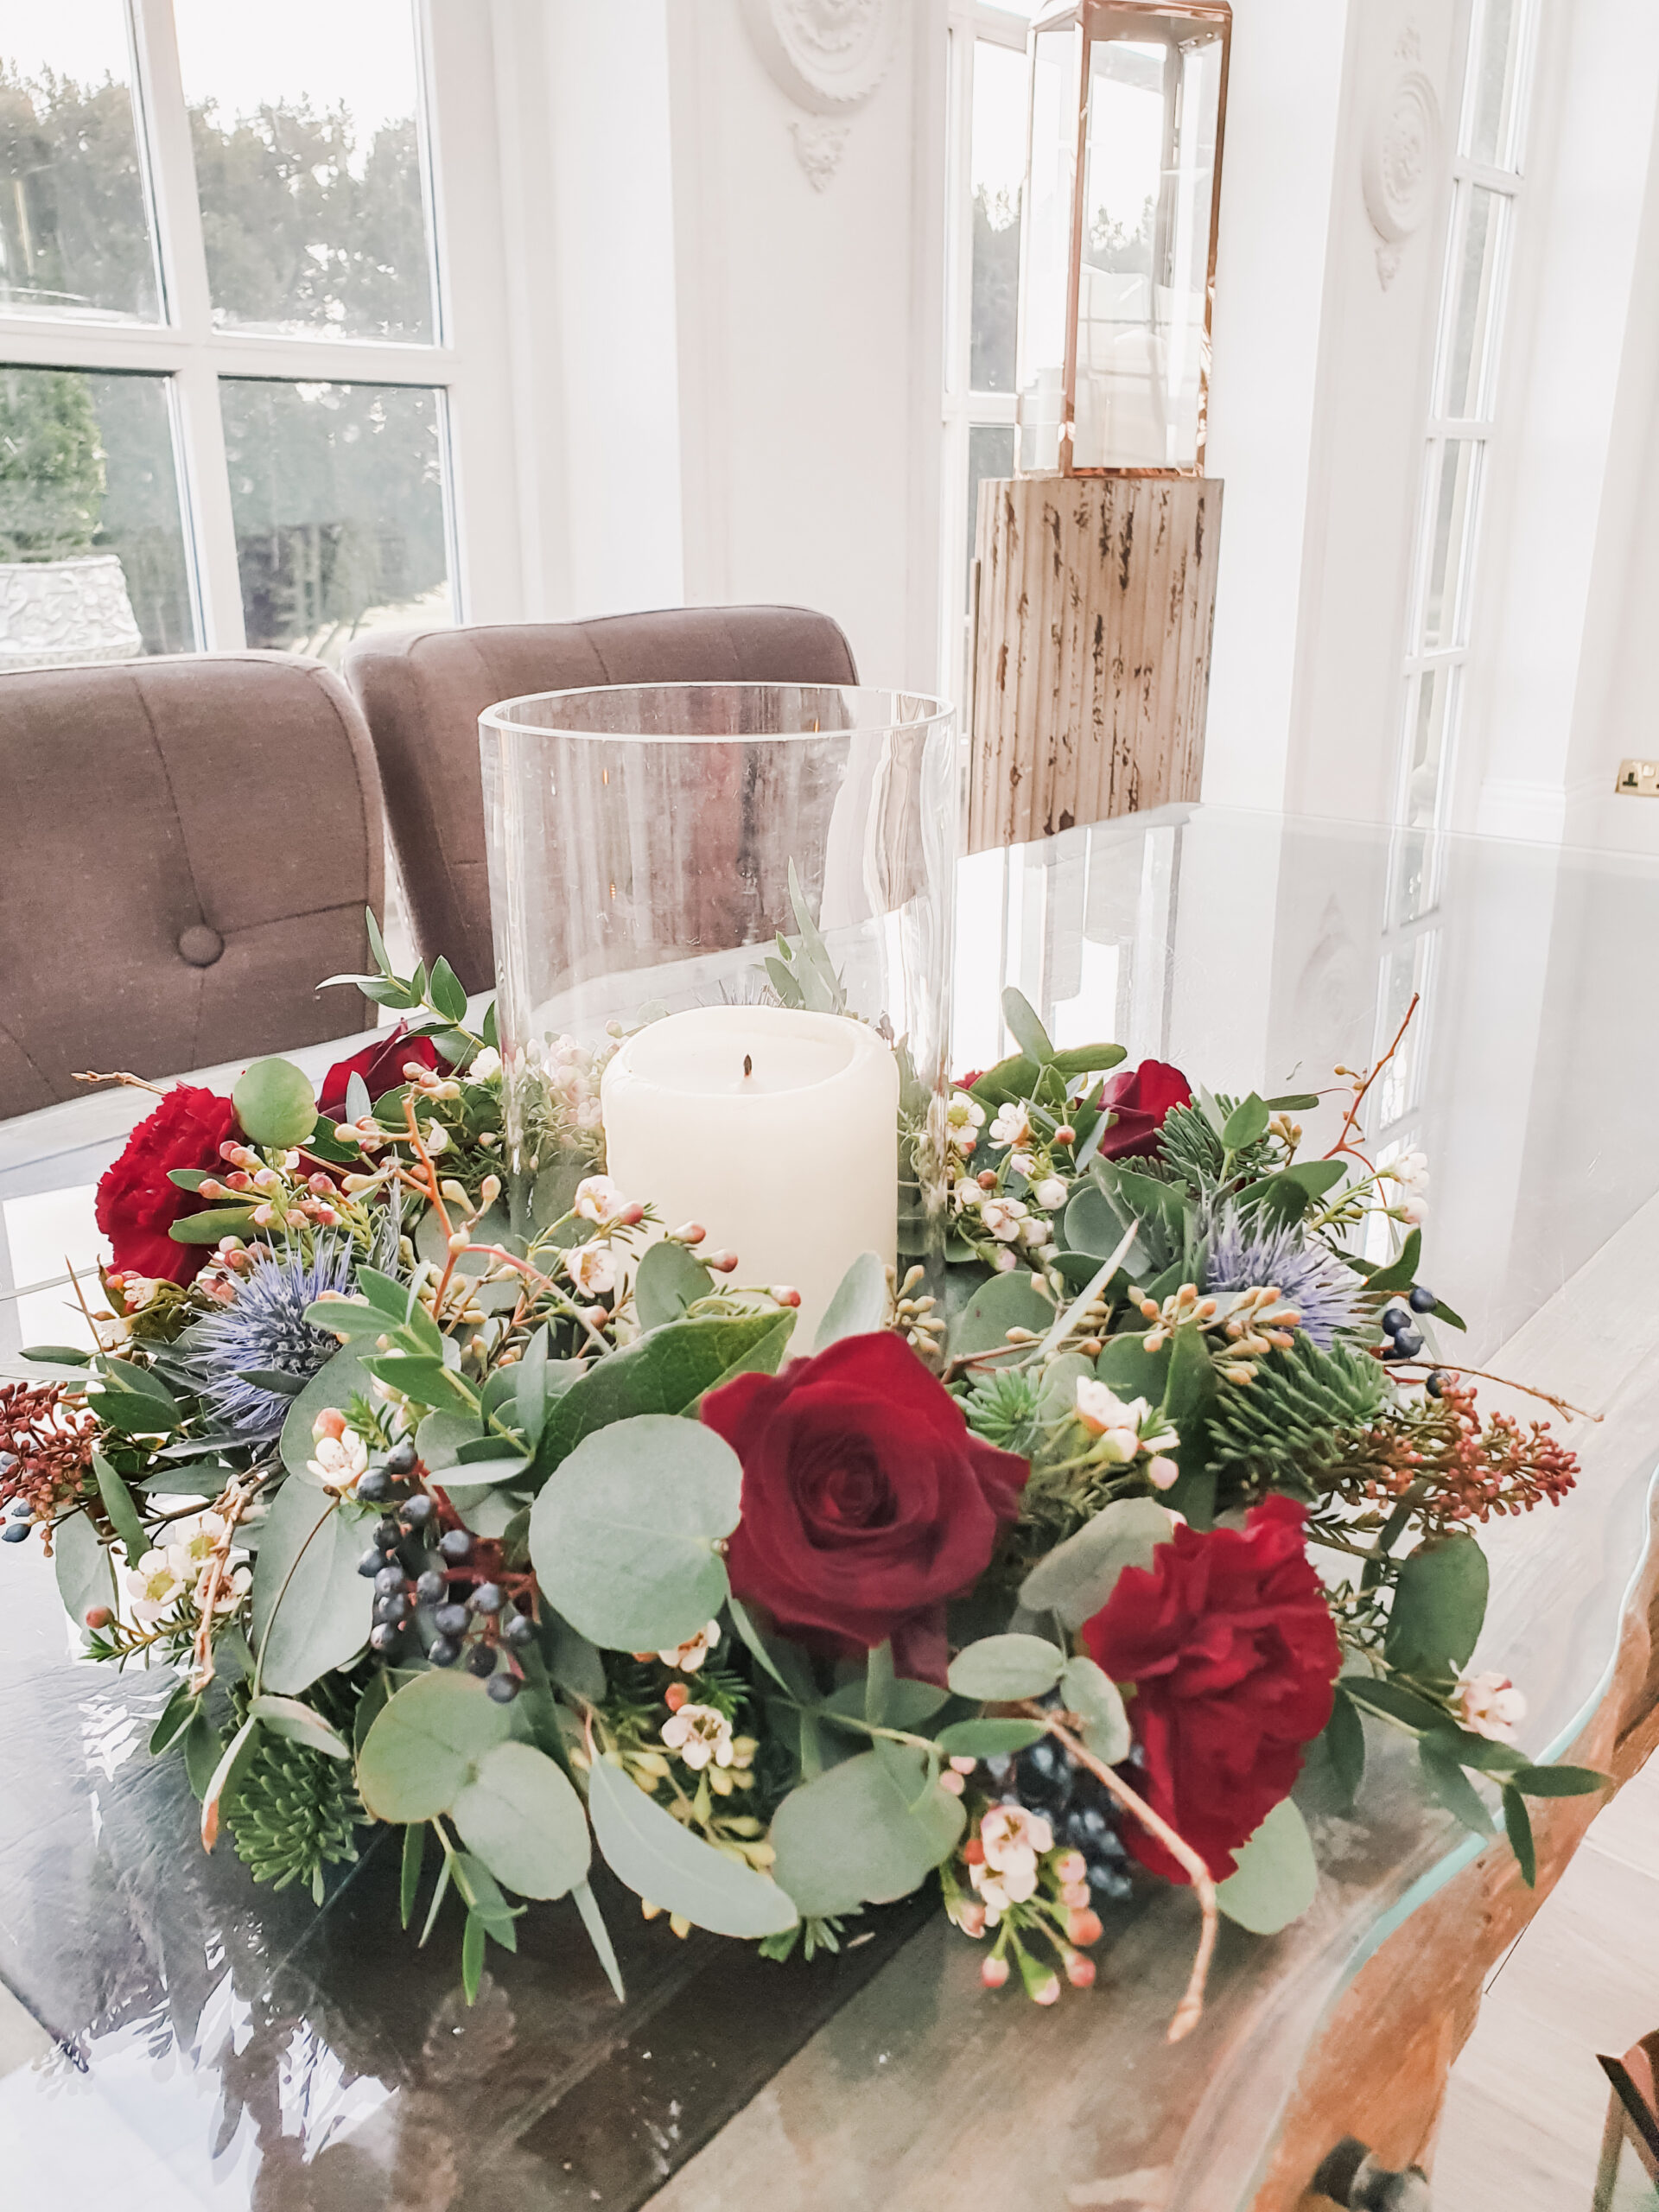 Wedding flowers on the registrars table in the Orangery at Woodhill Hall